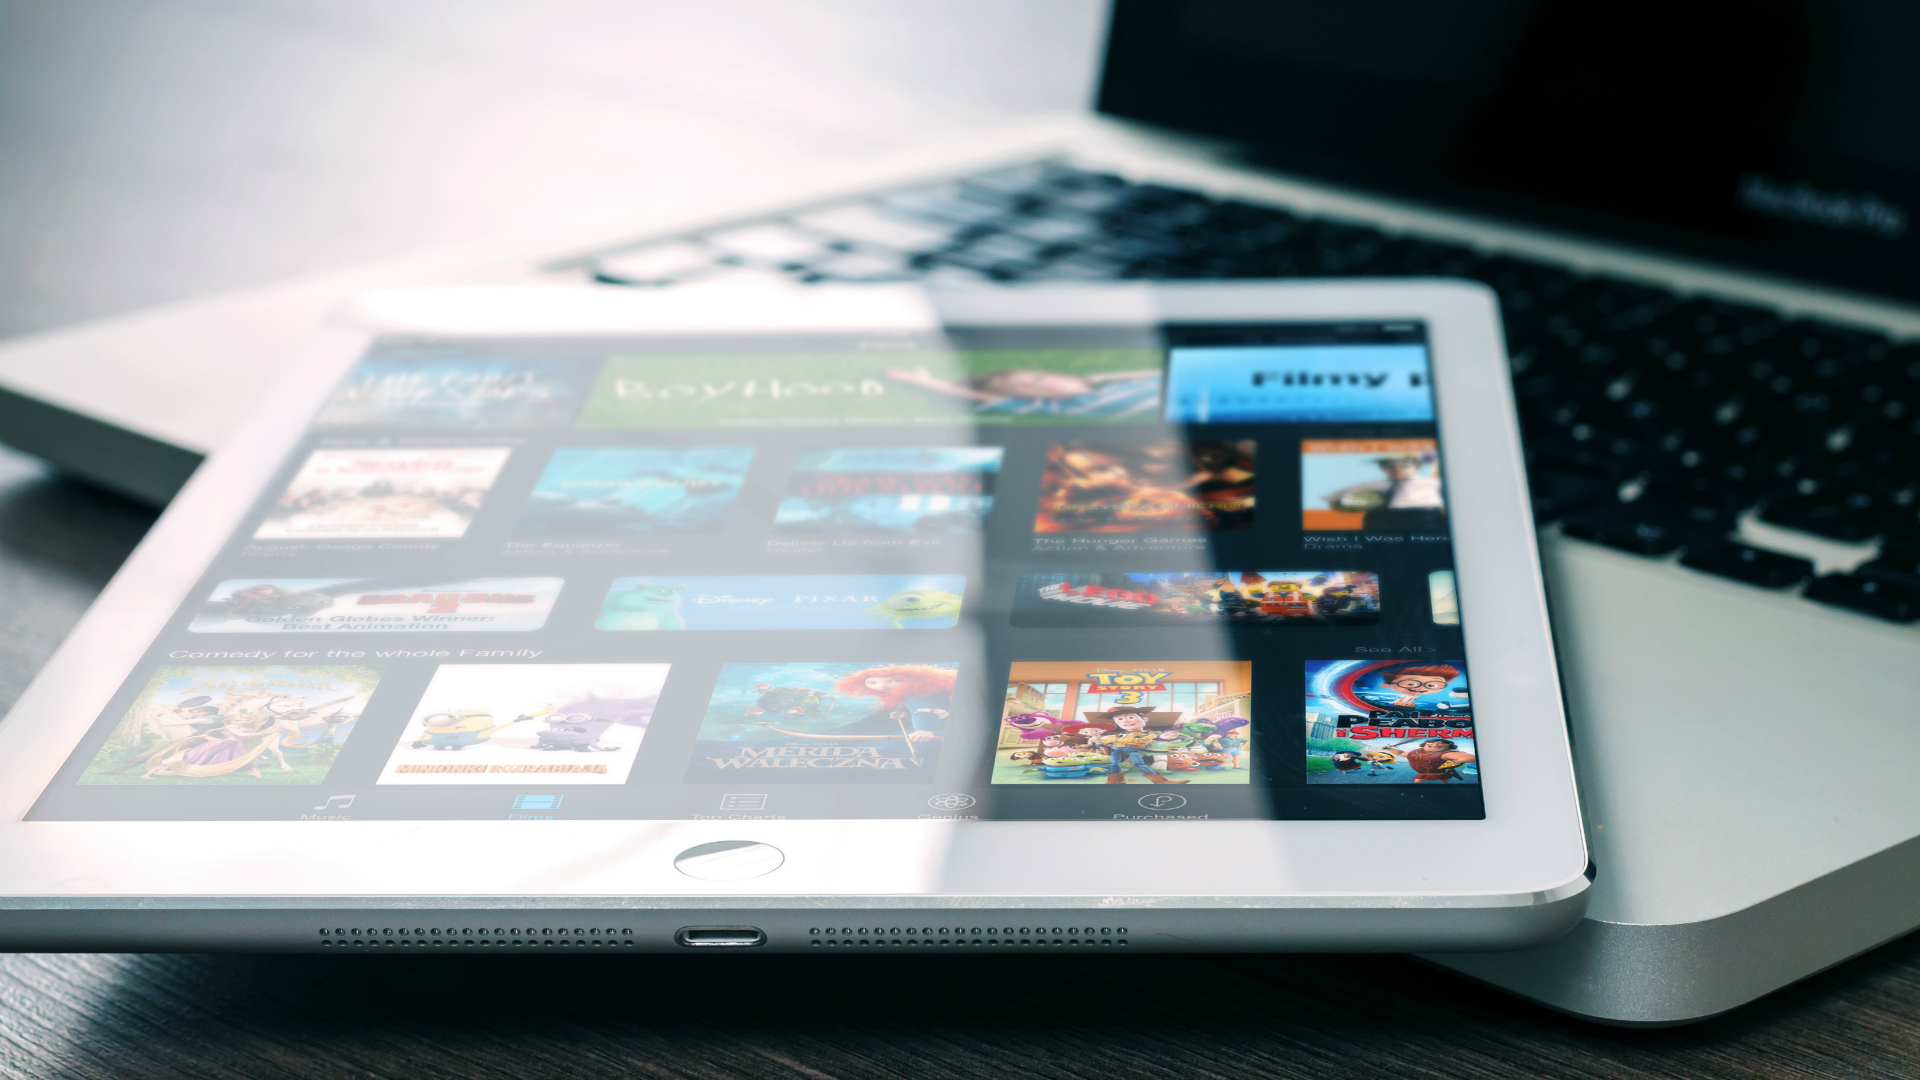 The importance of owning your own content platform